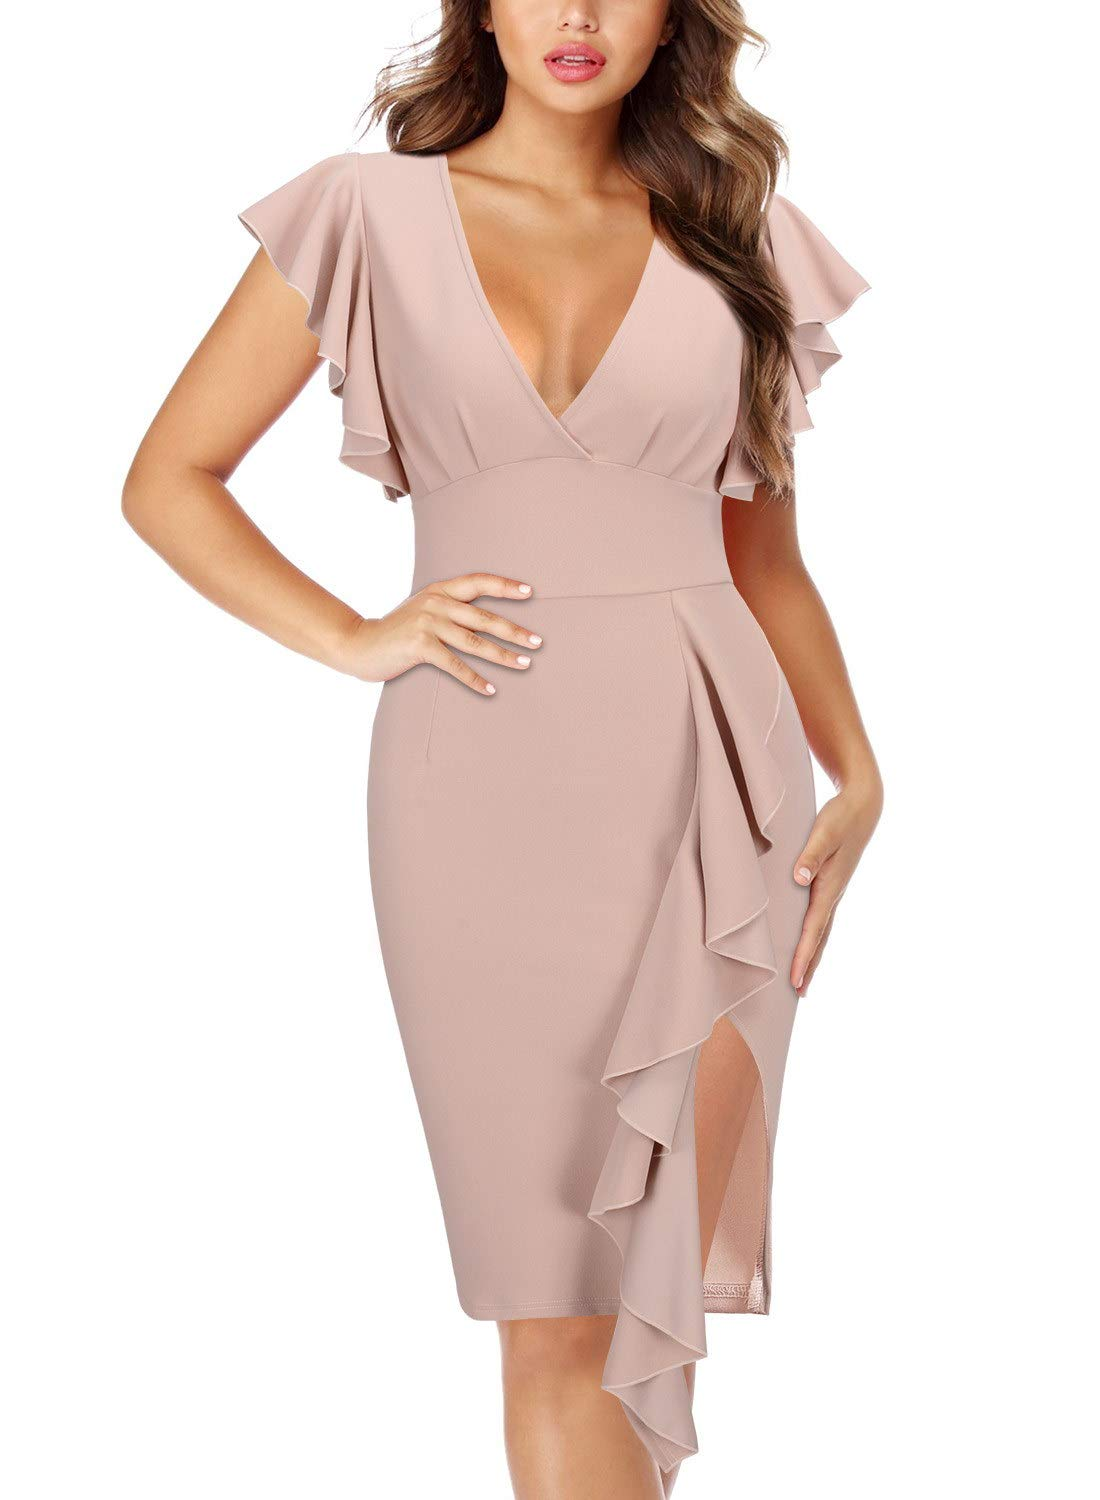 Wedding Guest Dresses - Women's Sleeveless Split Ruched Halter Party Cocktail Long Dress